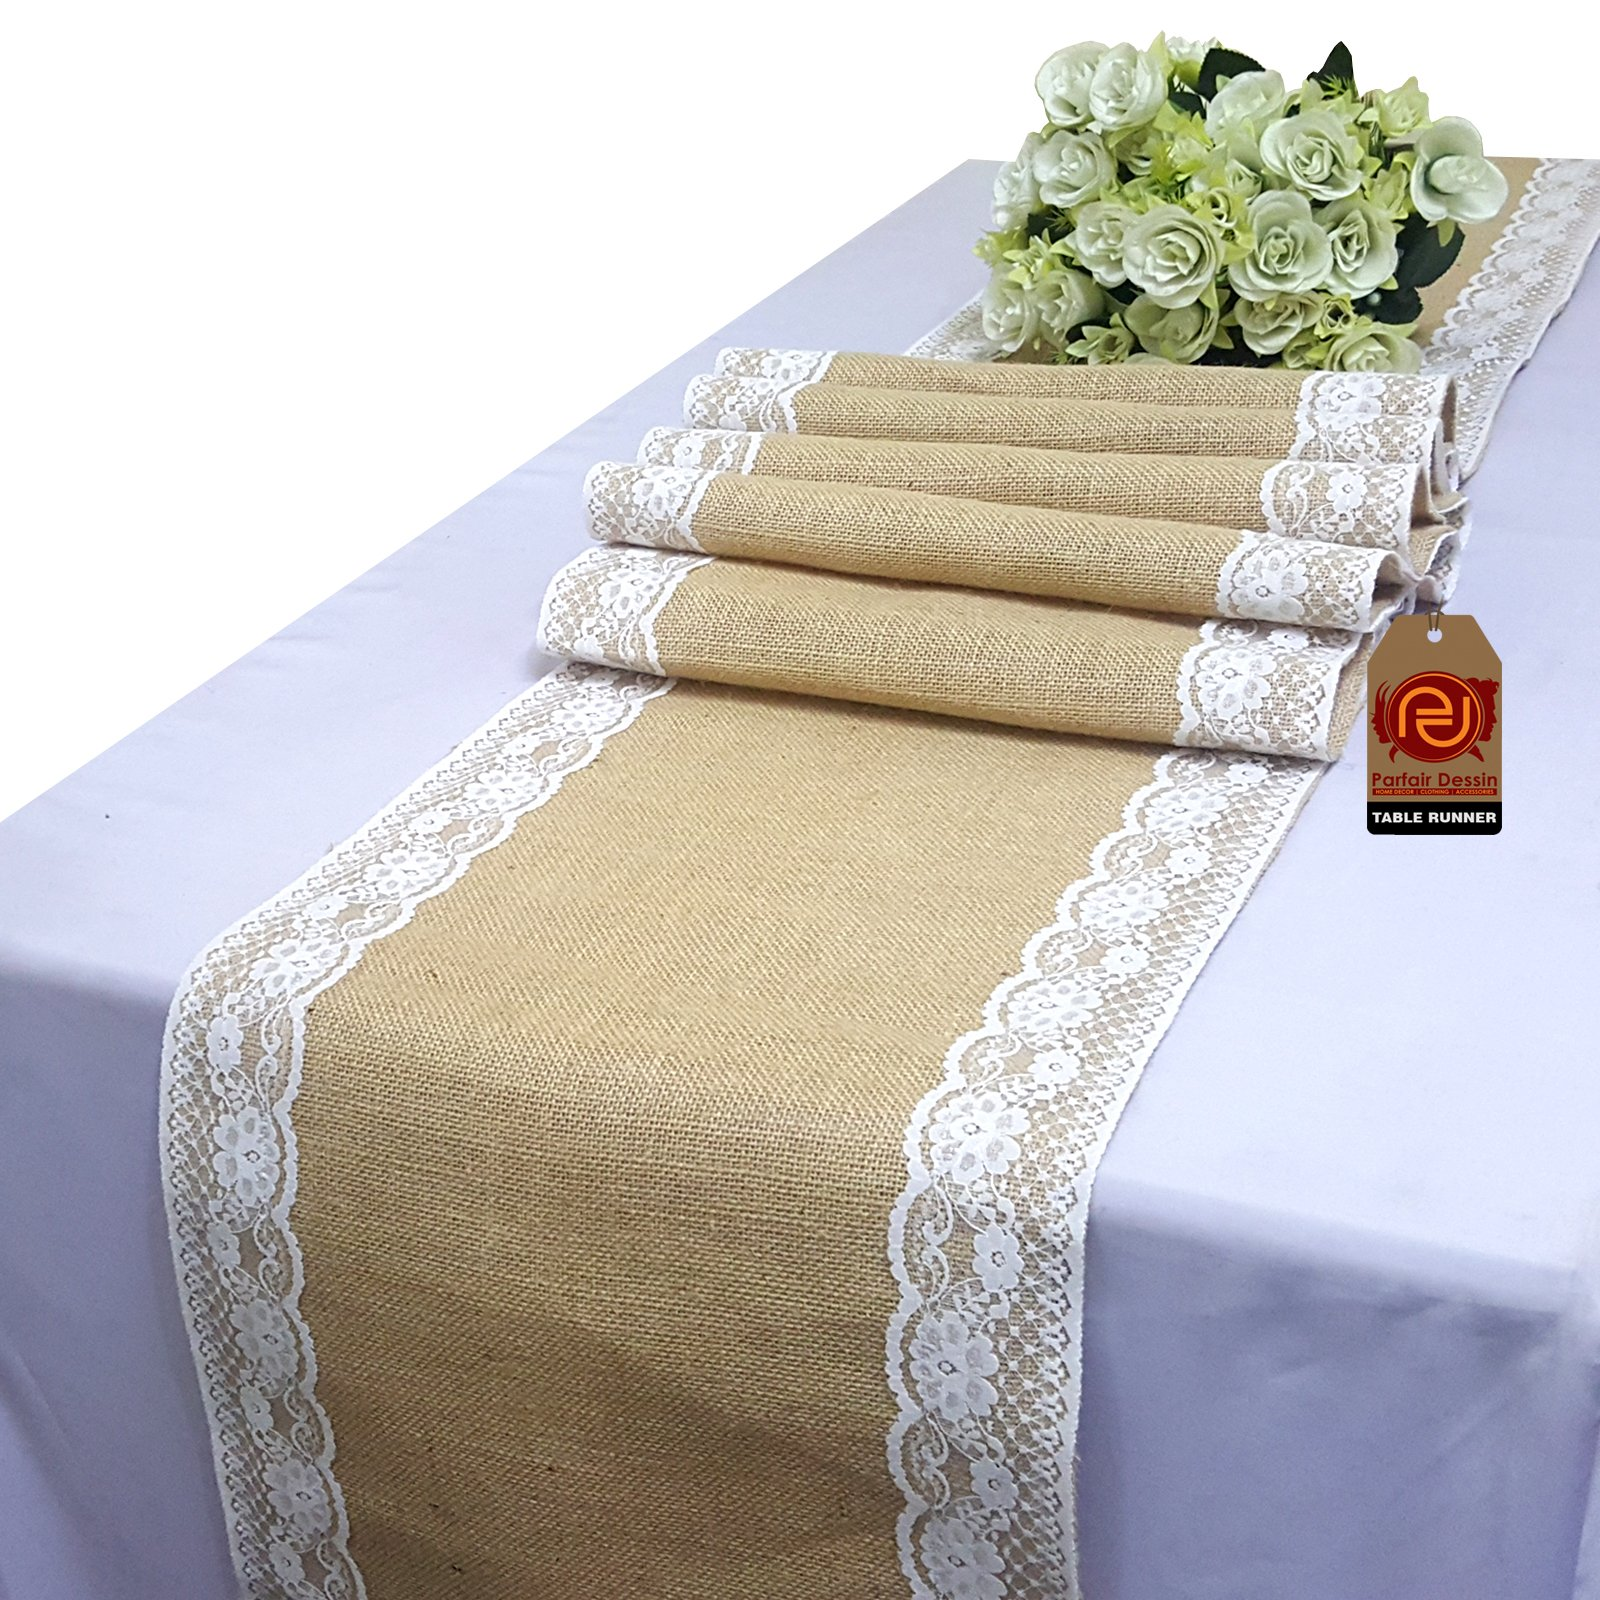 Parfair Dessin 2.5'' Lace Natural Burlap Jute Table Runner for Rustic Primitive Country Wedding Party Farmhouse Decoration Spring Bridal Baby Shower Decor (12 in. x 84 in., Natural)